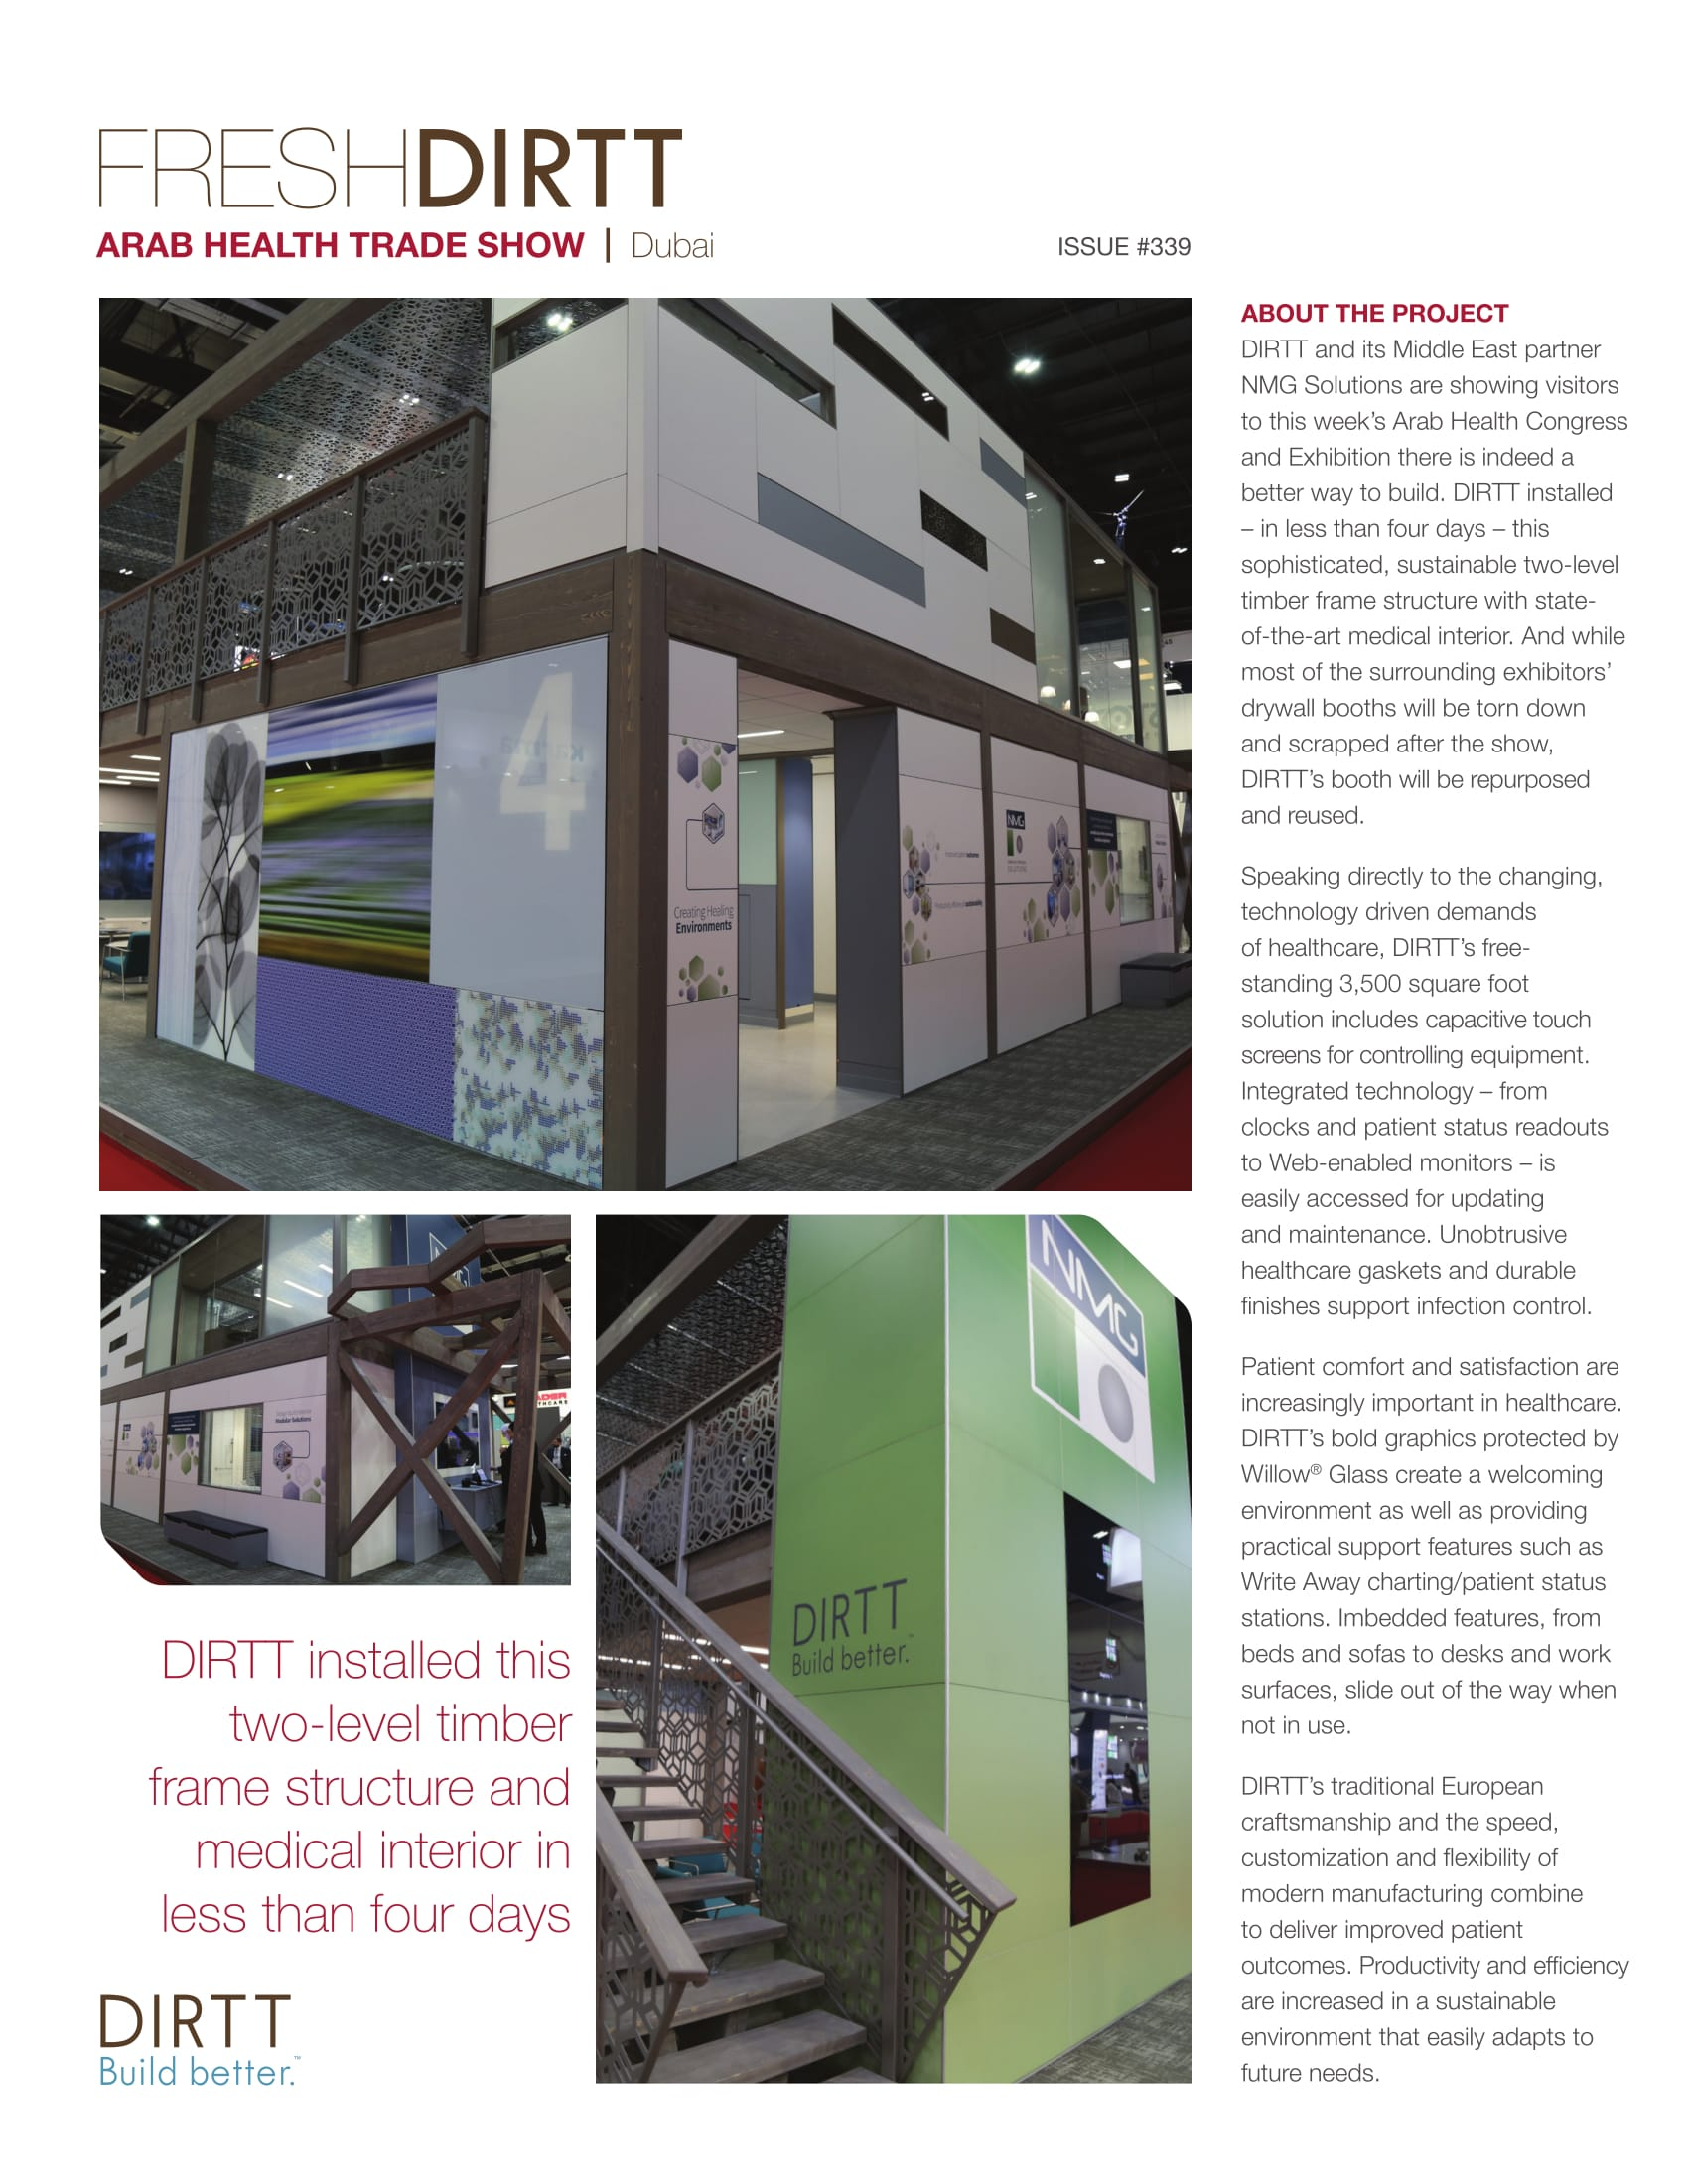 Arab Health Trade Show Issue 339